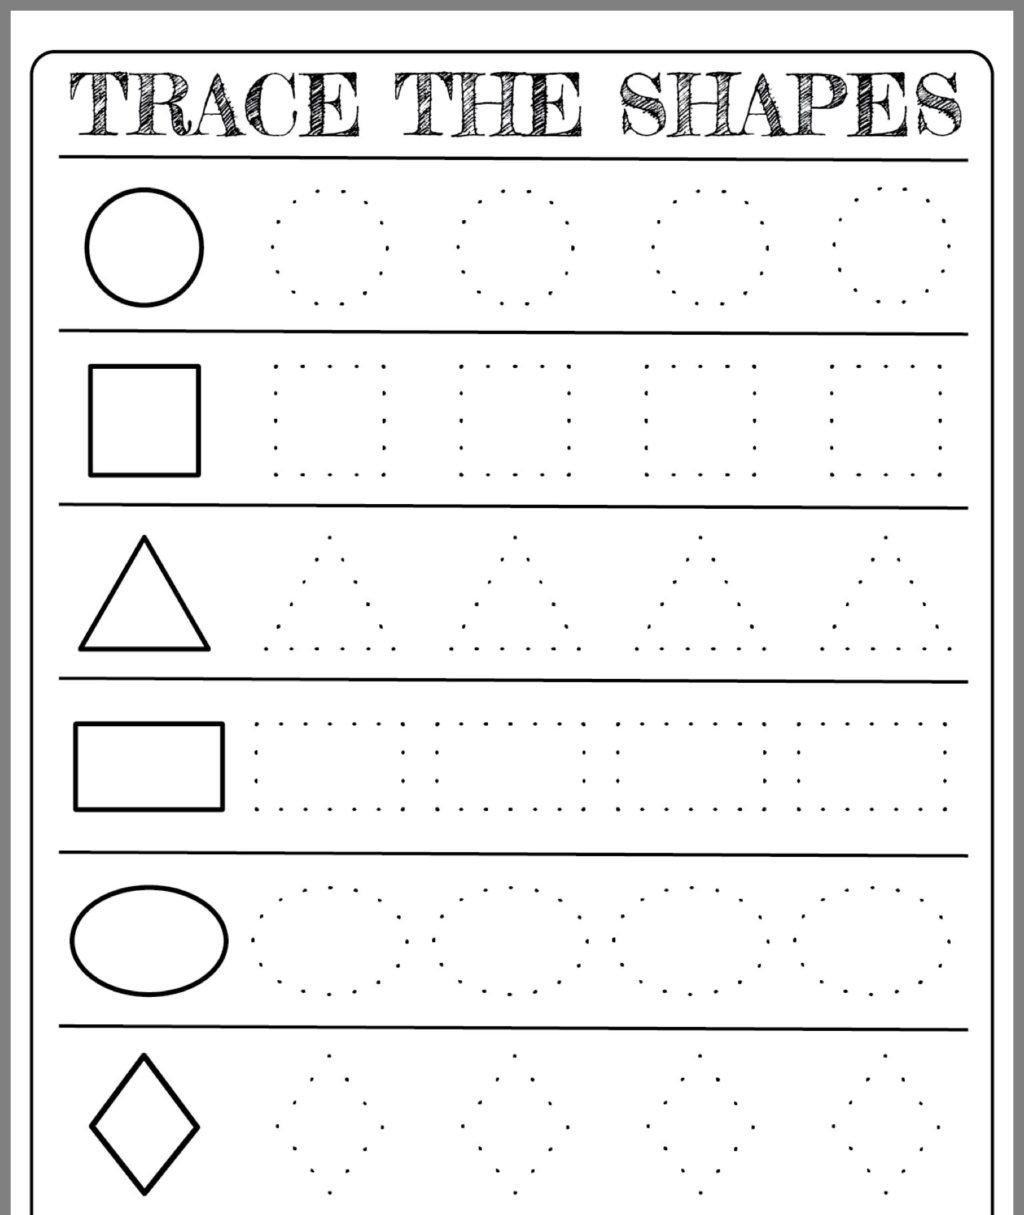 freerintable shapes worksheets for toddlers andreschoolers 696x826 on worksheet marvelousrintables 1024x1215